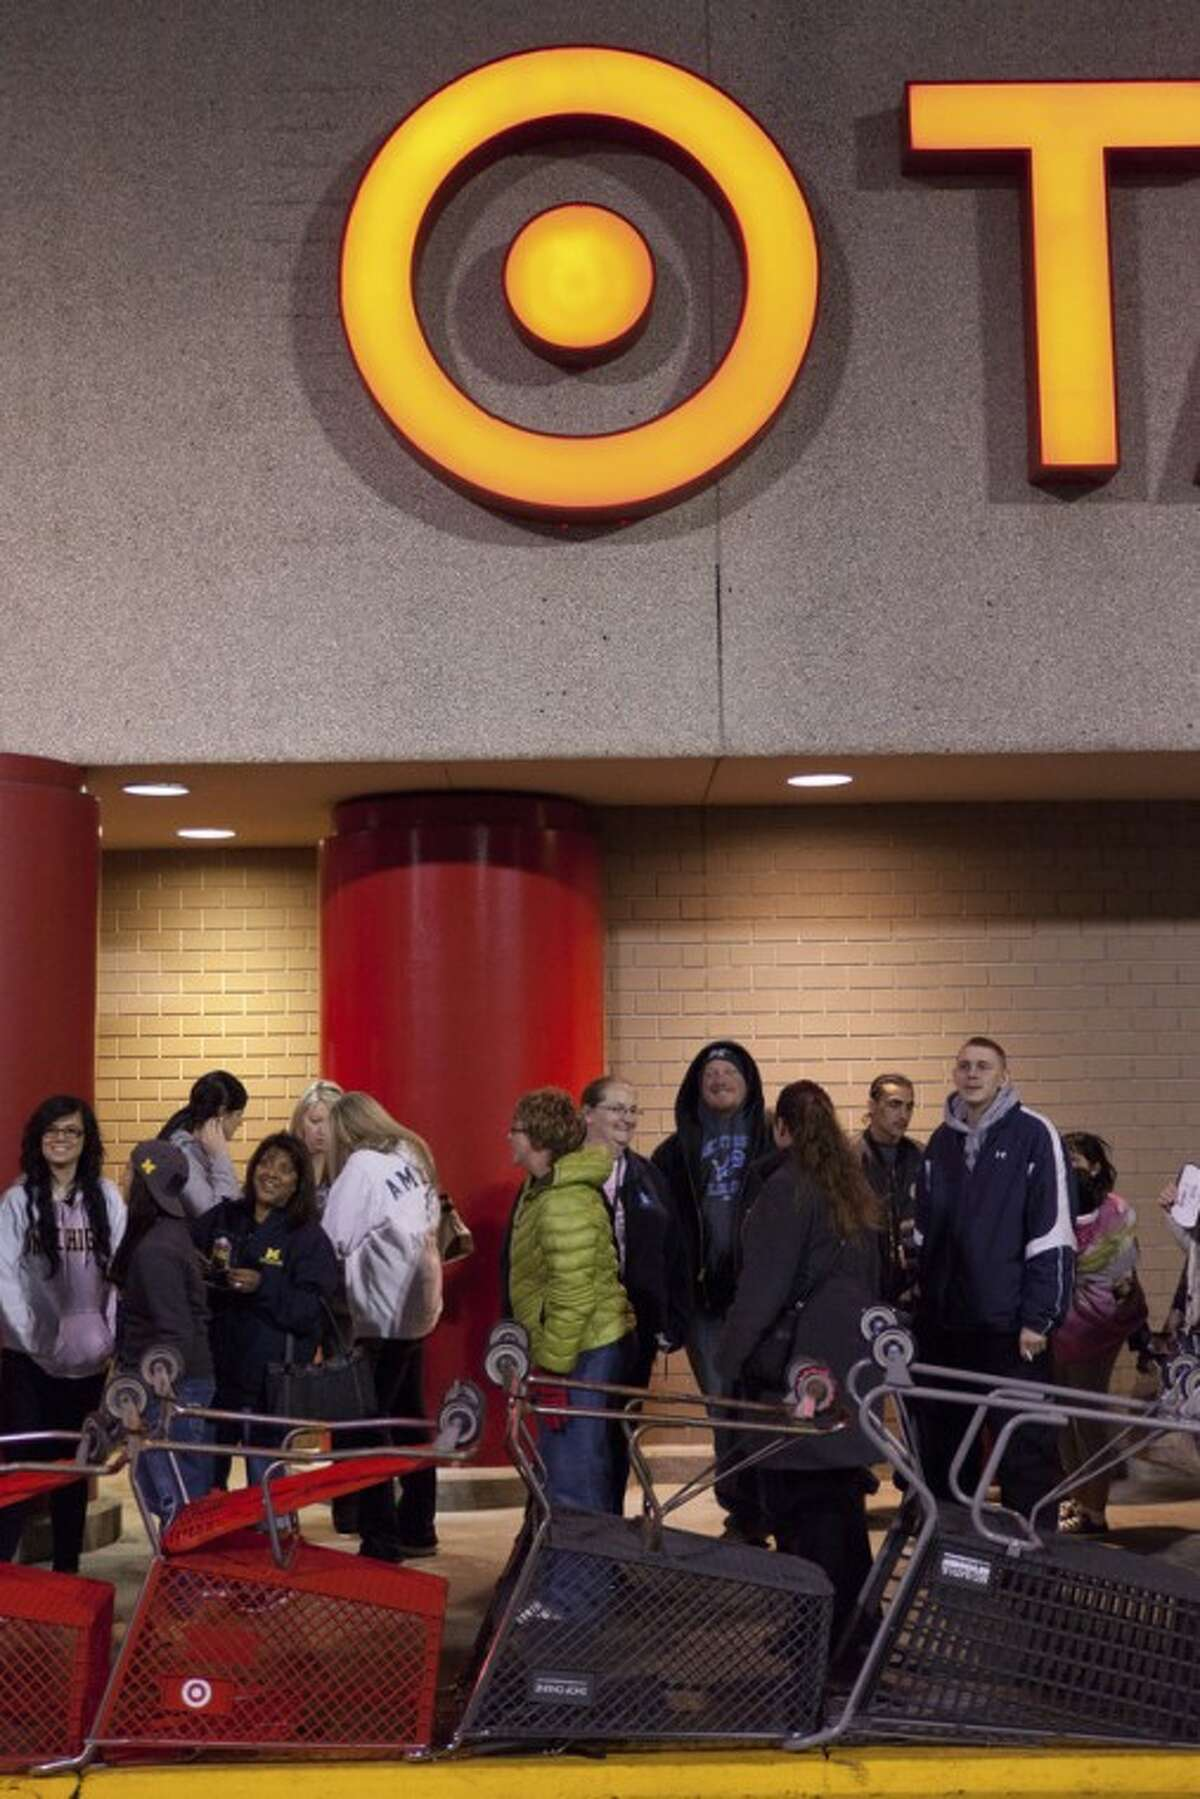 Shoppers wait in line outside of Target prior to them opening Thursday Nov. 22, 2012 at 9 p.m. for their Black Friday sales event in Flint, Mich. (AP Photo/Flint Journal, Griffin Moores)